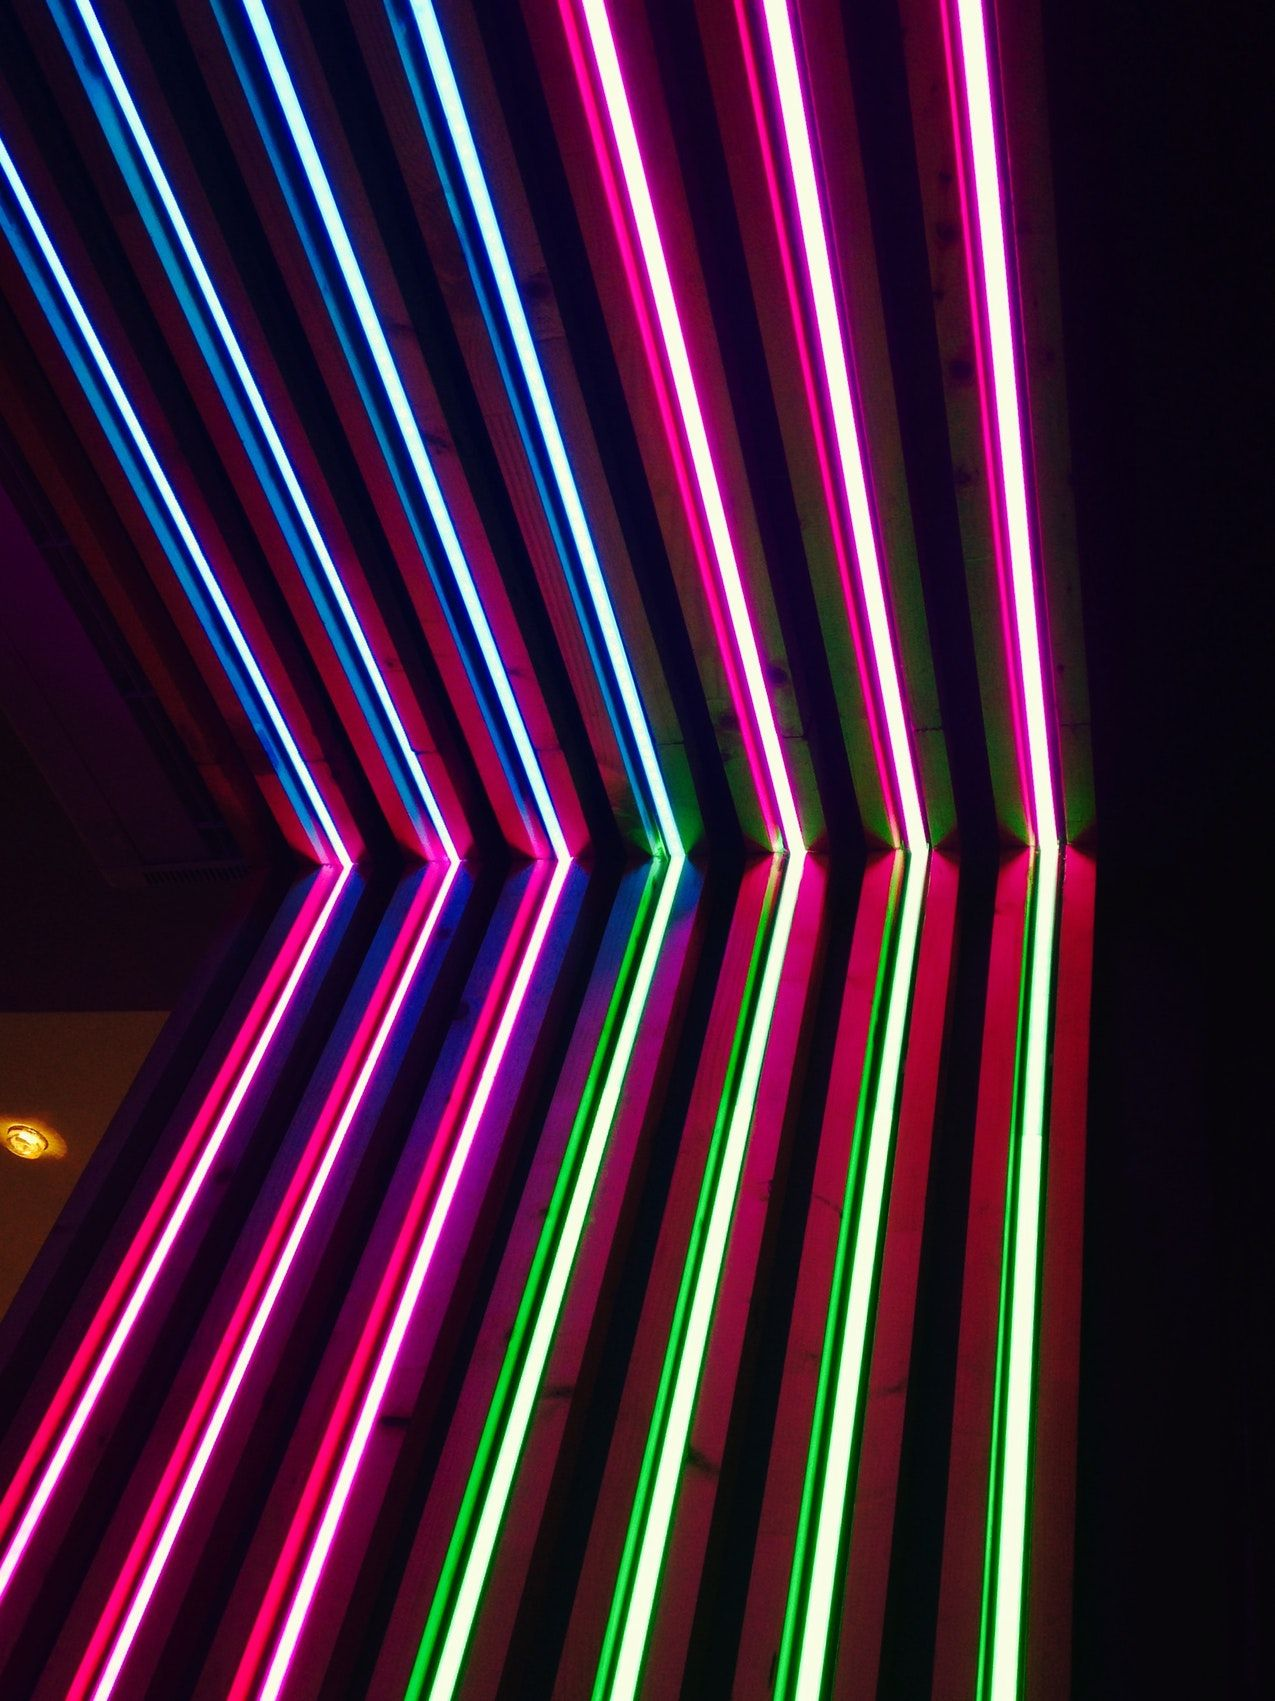 Neon, color, macro and stripe HD photo by David Pisnoy